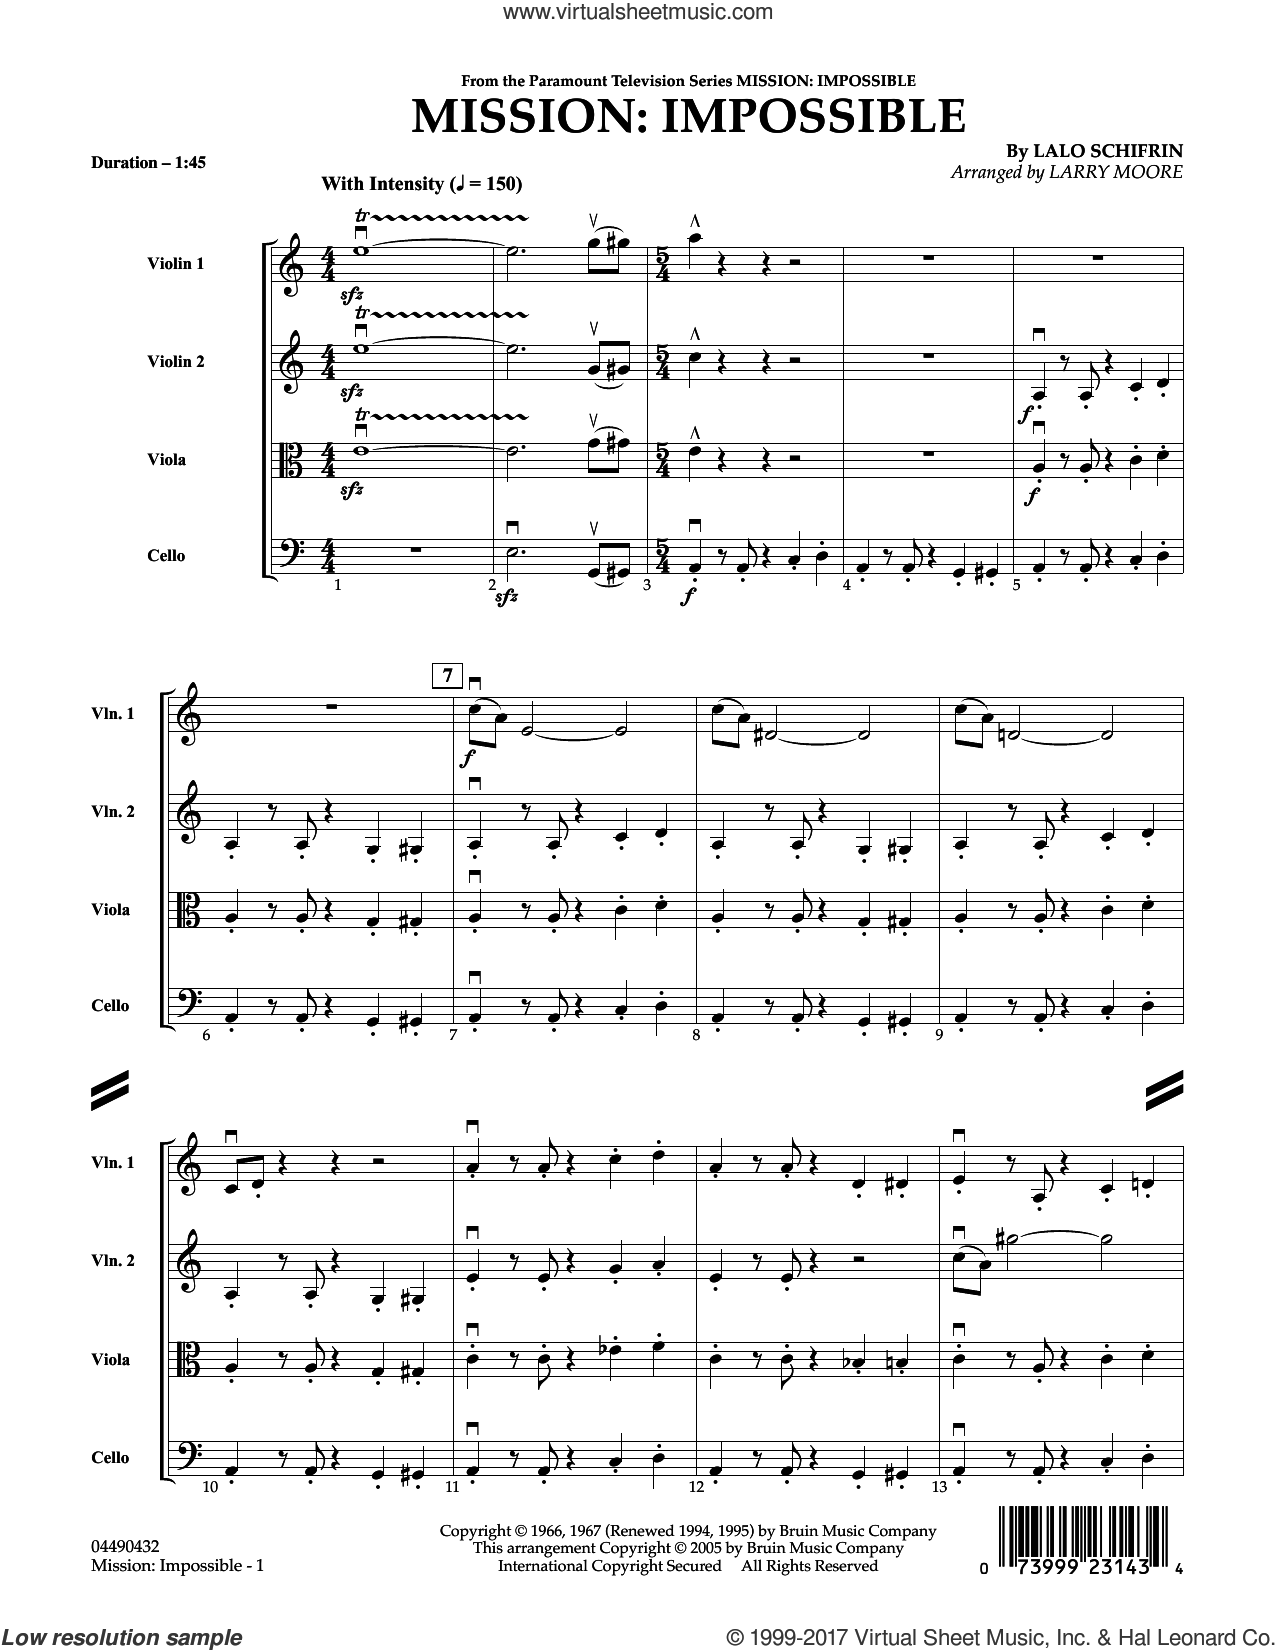 Moore - Mission: Impossible Theme sheet music (complete collection) for  orchestra (Strings)